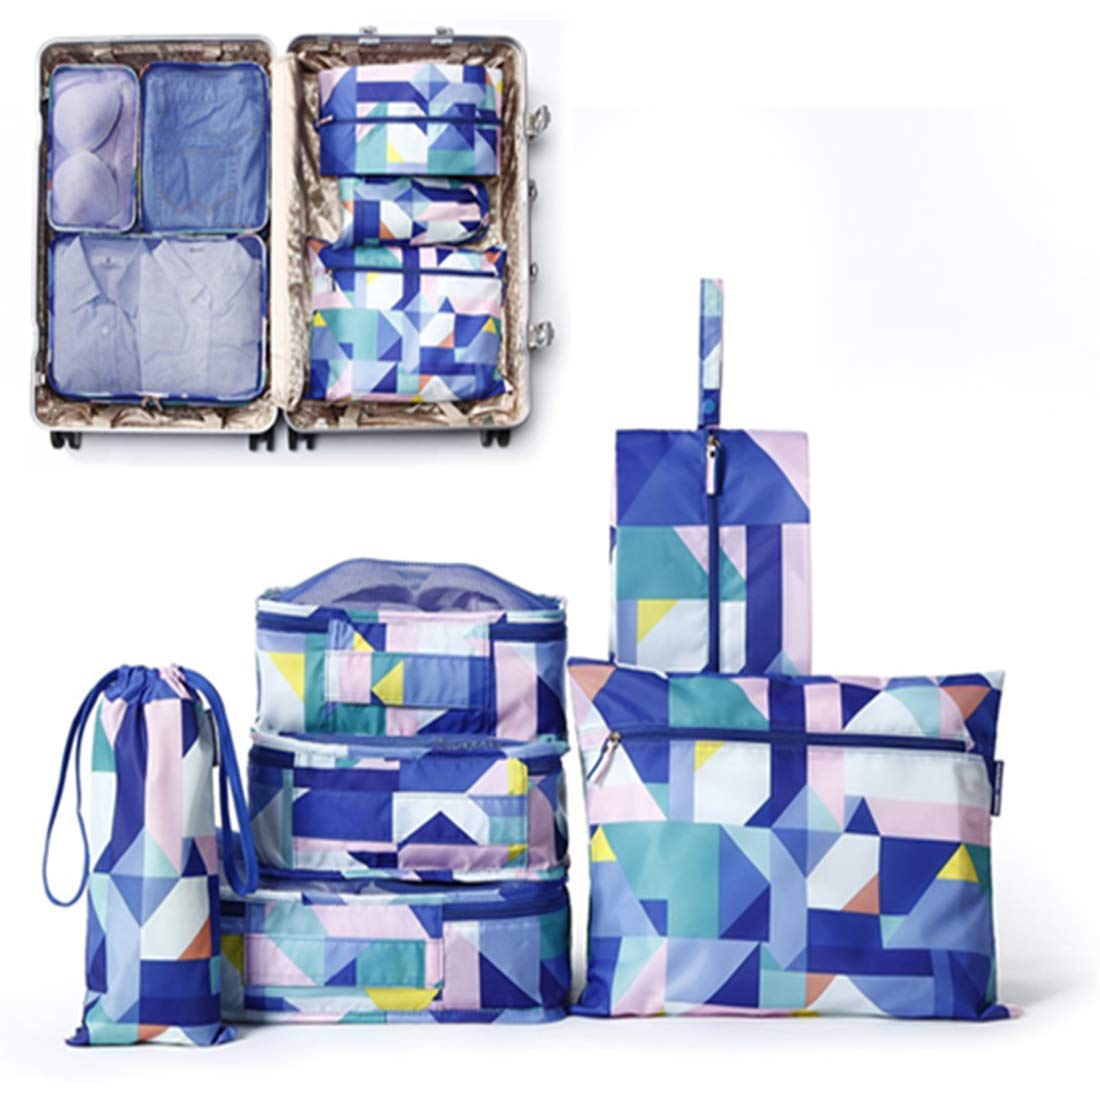 fcca7a52fef3 P travel .6 pcs packaging cube, portable travel packaging for luggage (blue  color)